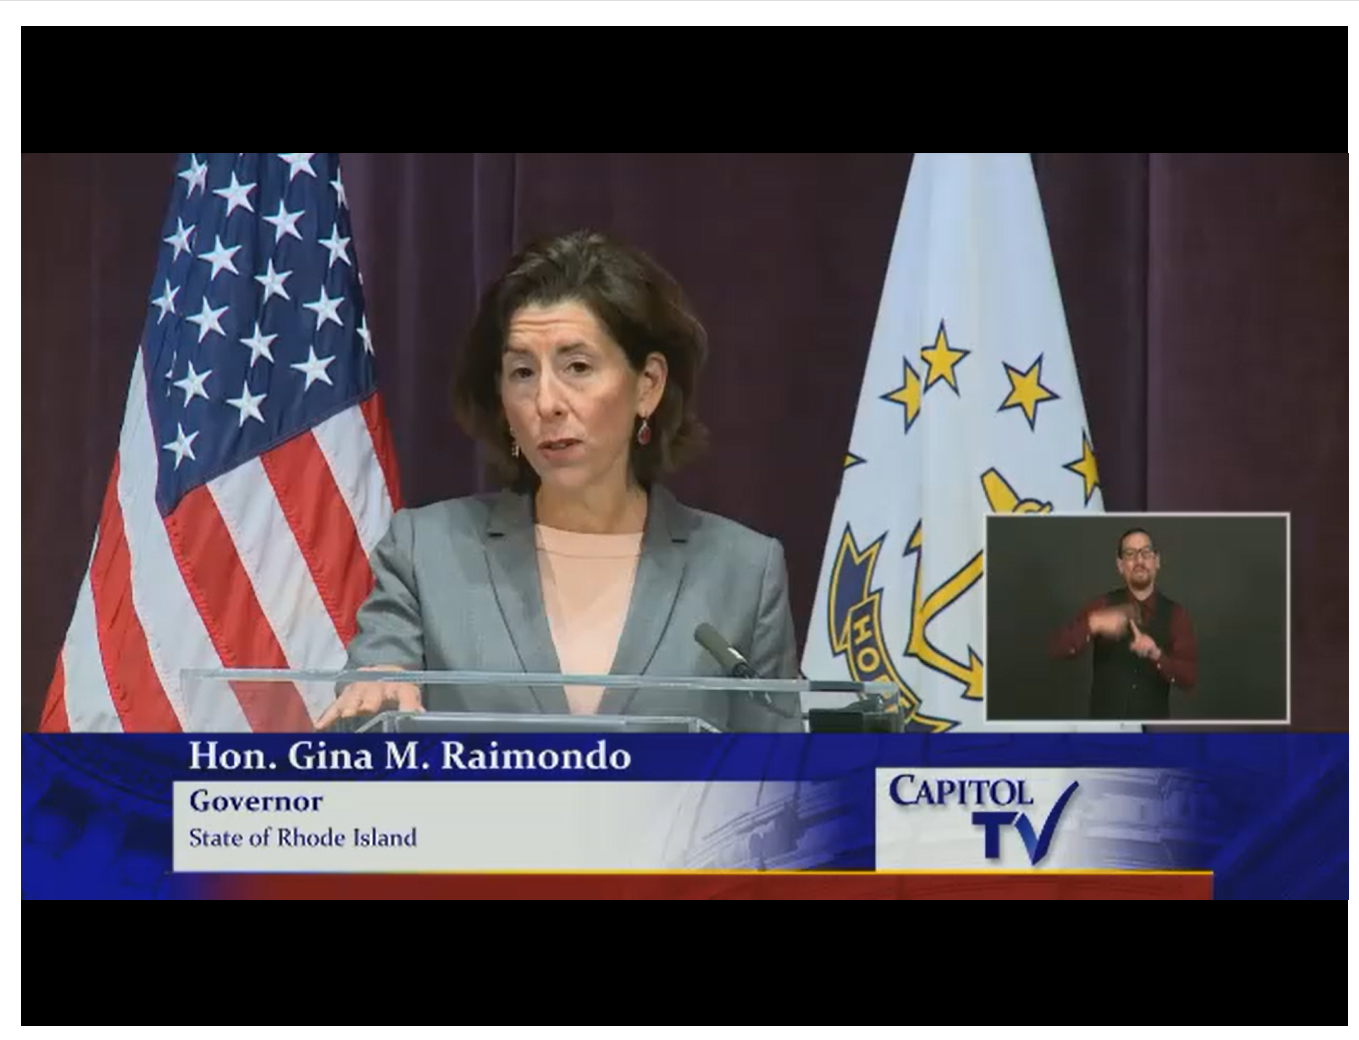 Gov. Raimondo Announces New Rhode Island COVID-19 Restrictions